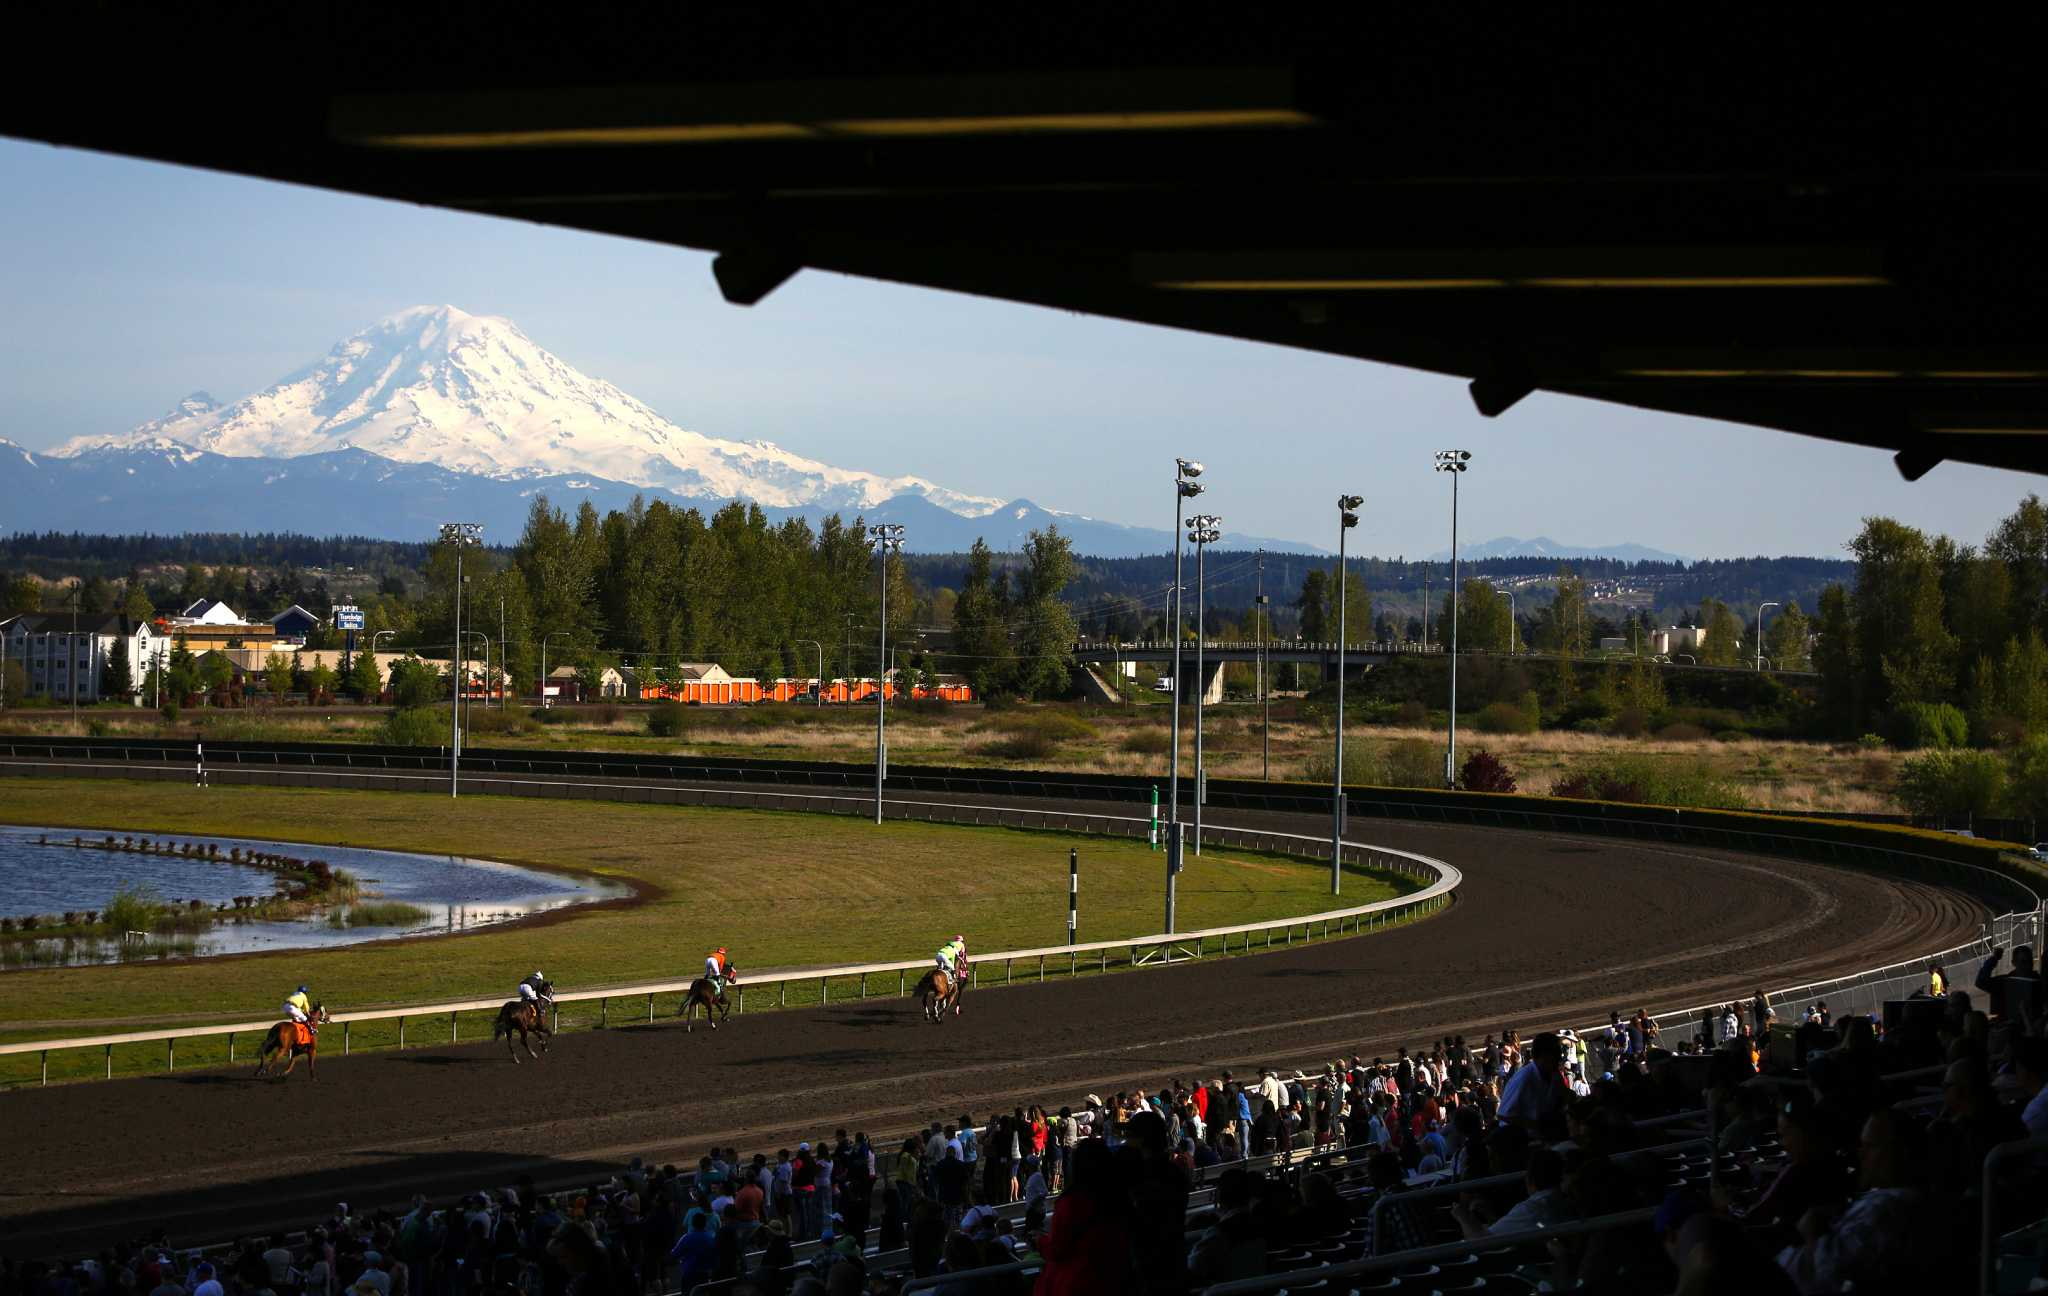 parkers emerald downs picks seattle